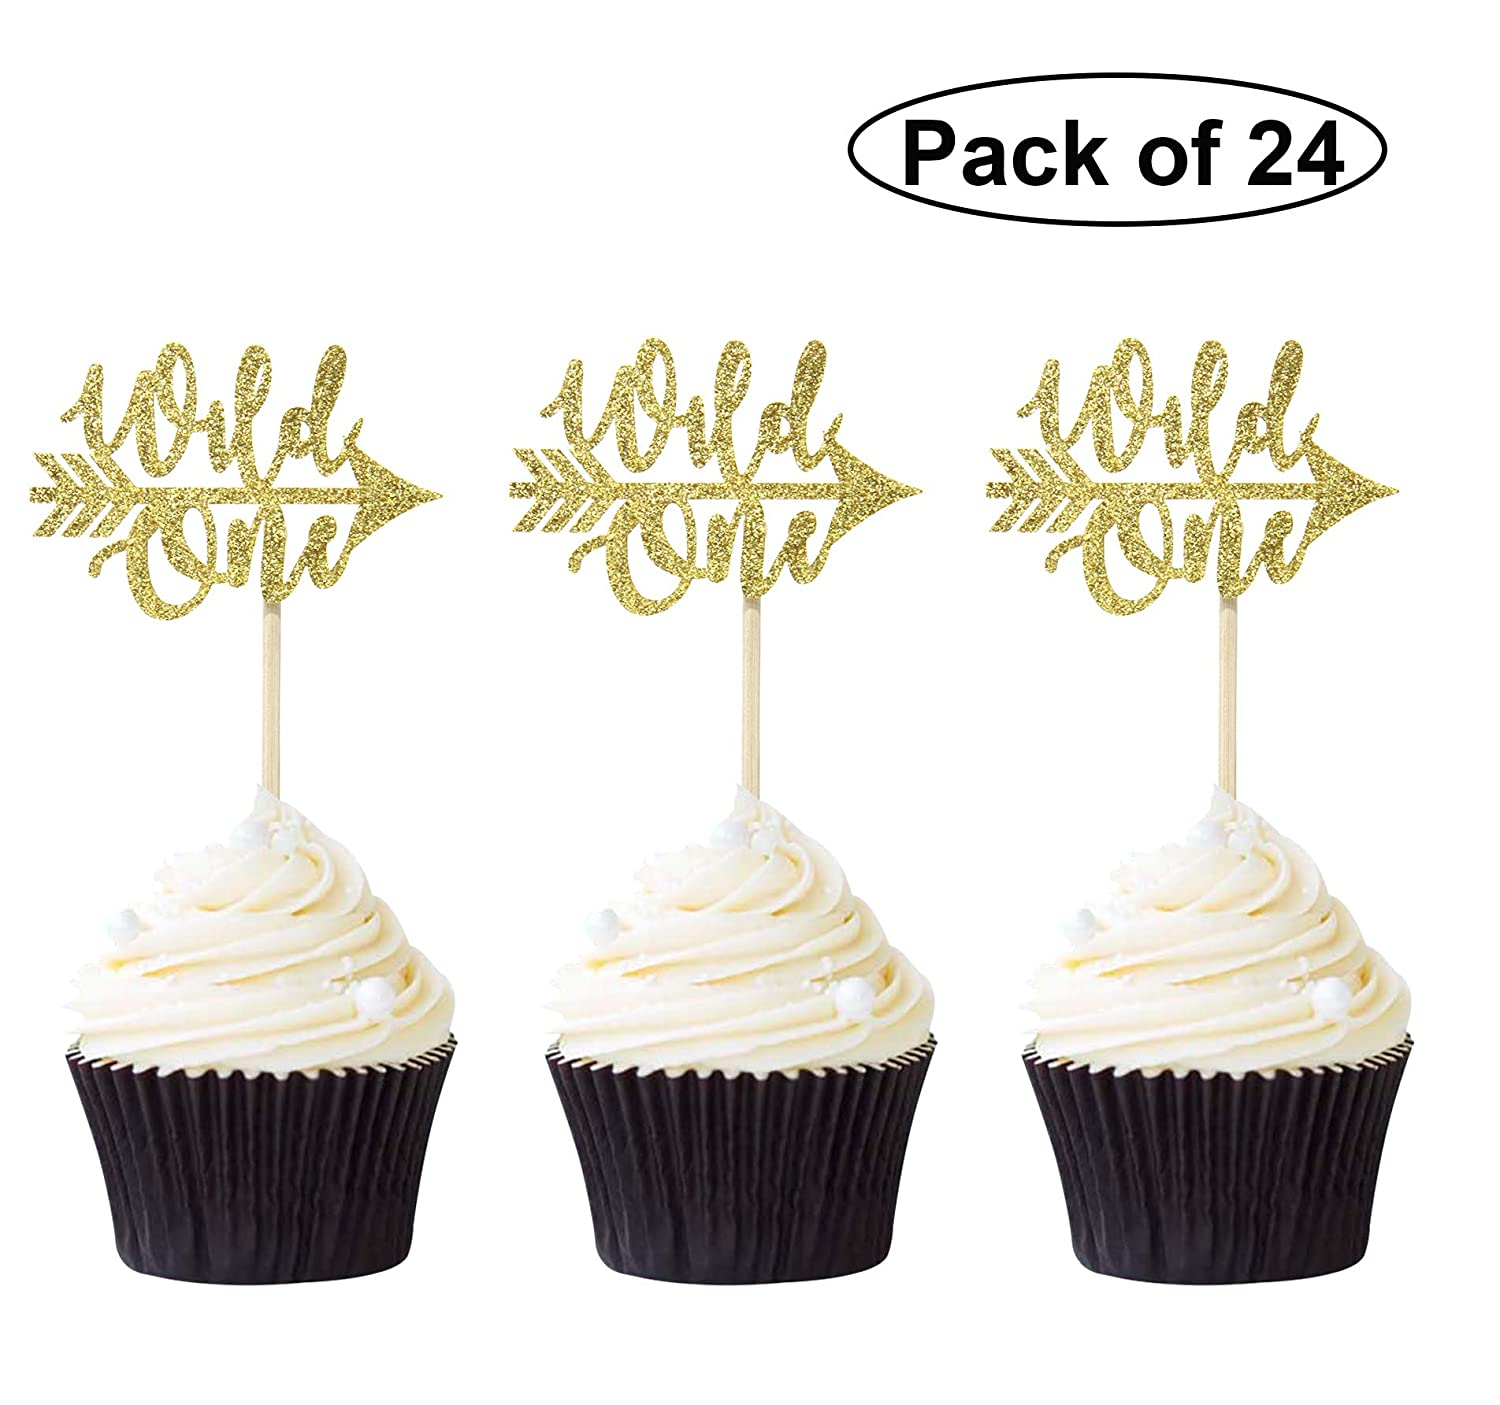 Newqueen 24PCS Black Glitter Wild One Cupcake Toppers Baby Shower 1st Birthday Party Cake Supplies